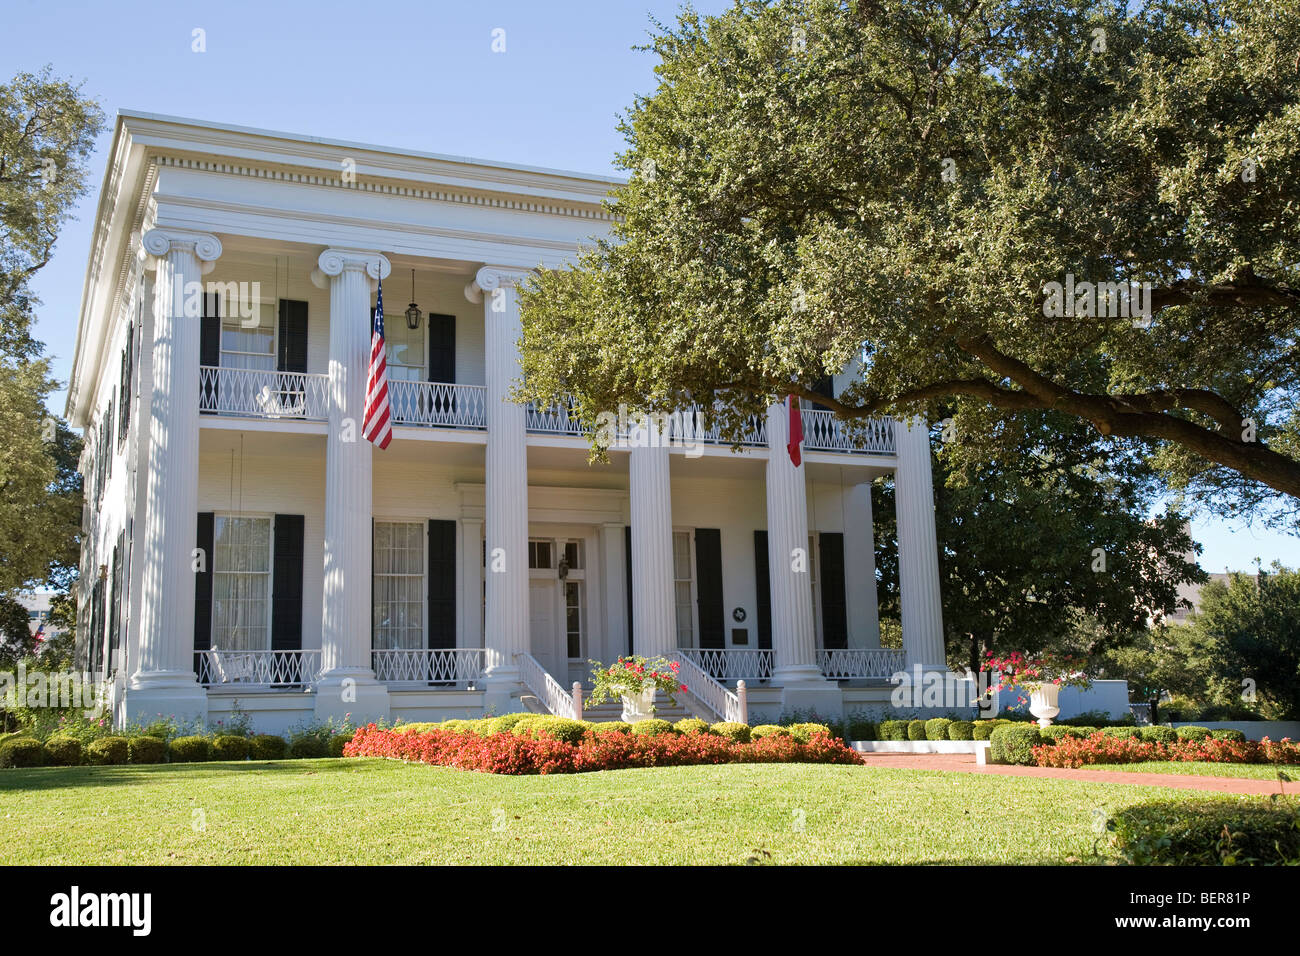 The 1856 neoclassical-style Governor's Mansion is one of the